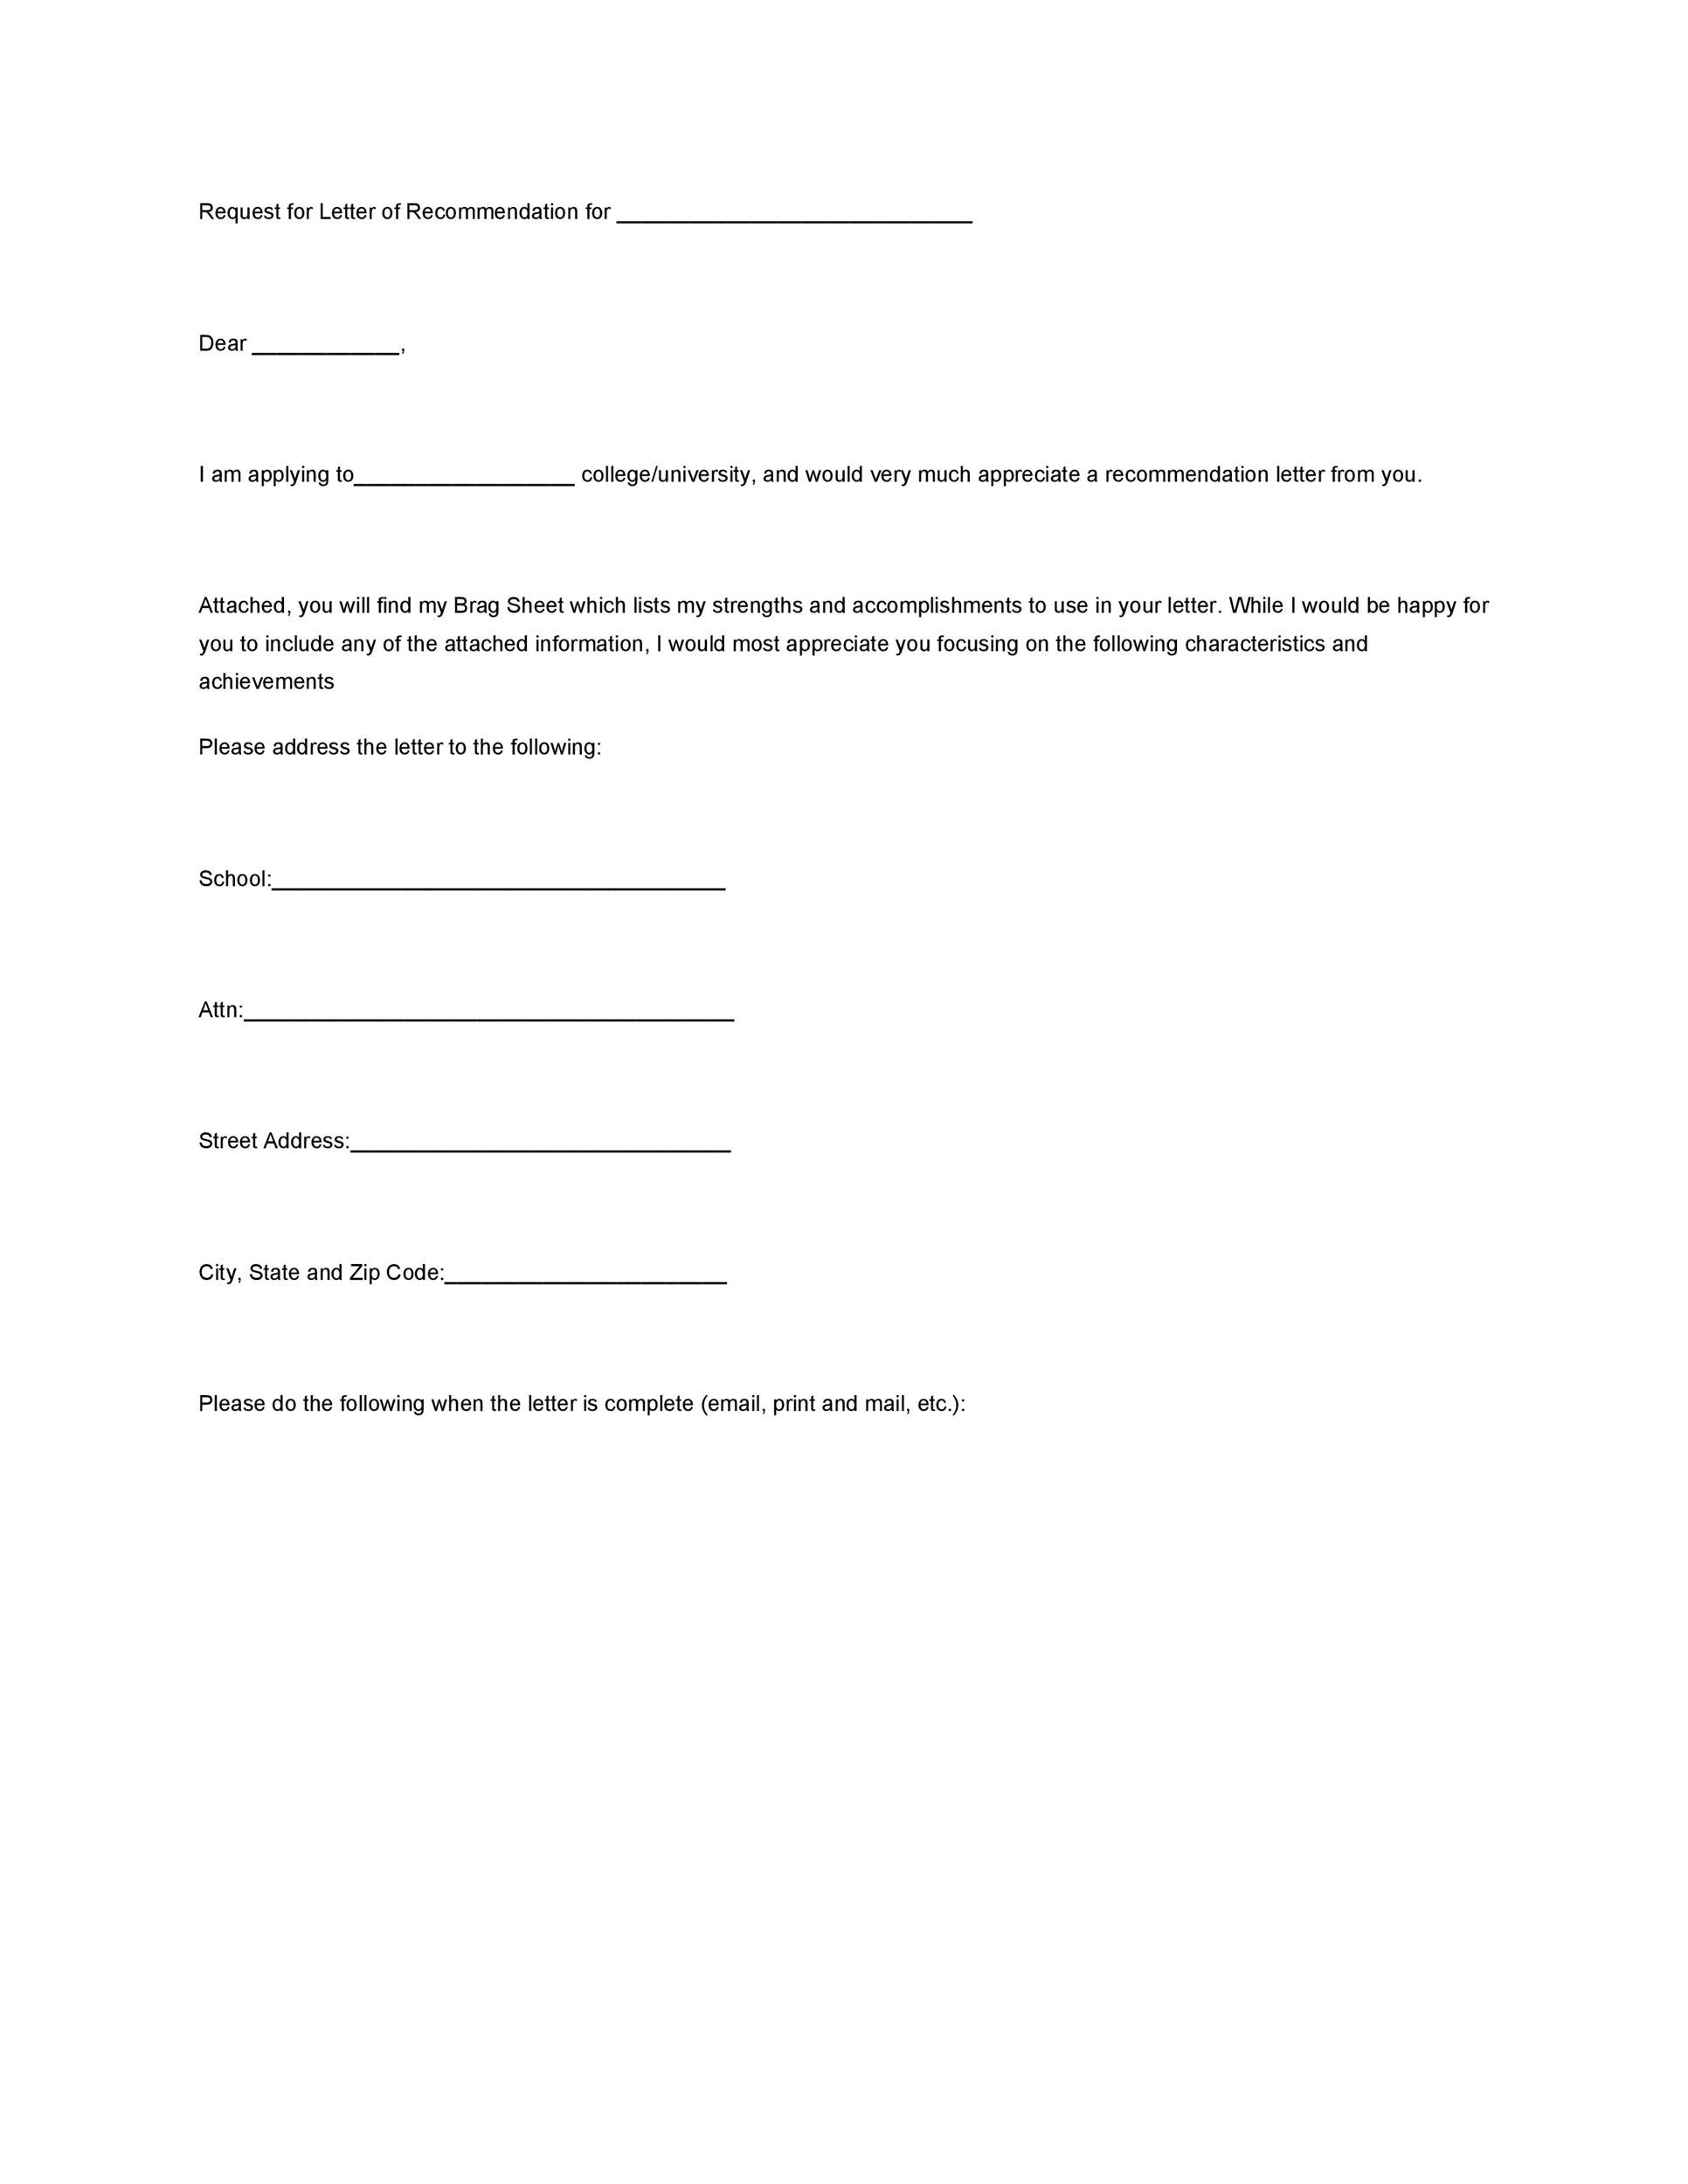 Requesting A Letter Of Recommendation Email from templatelab.com